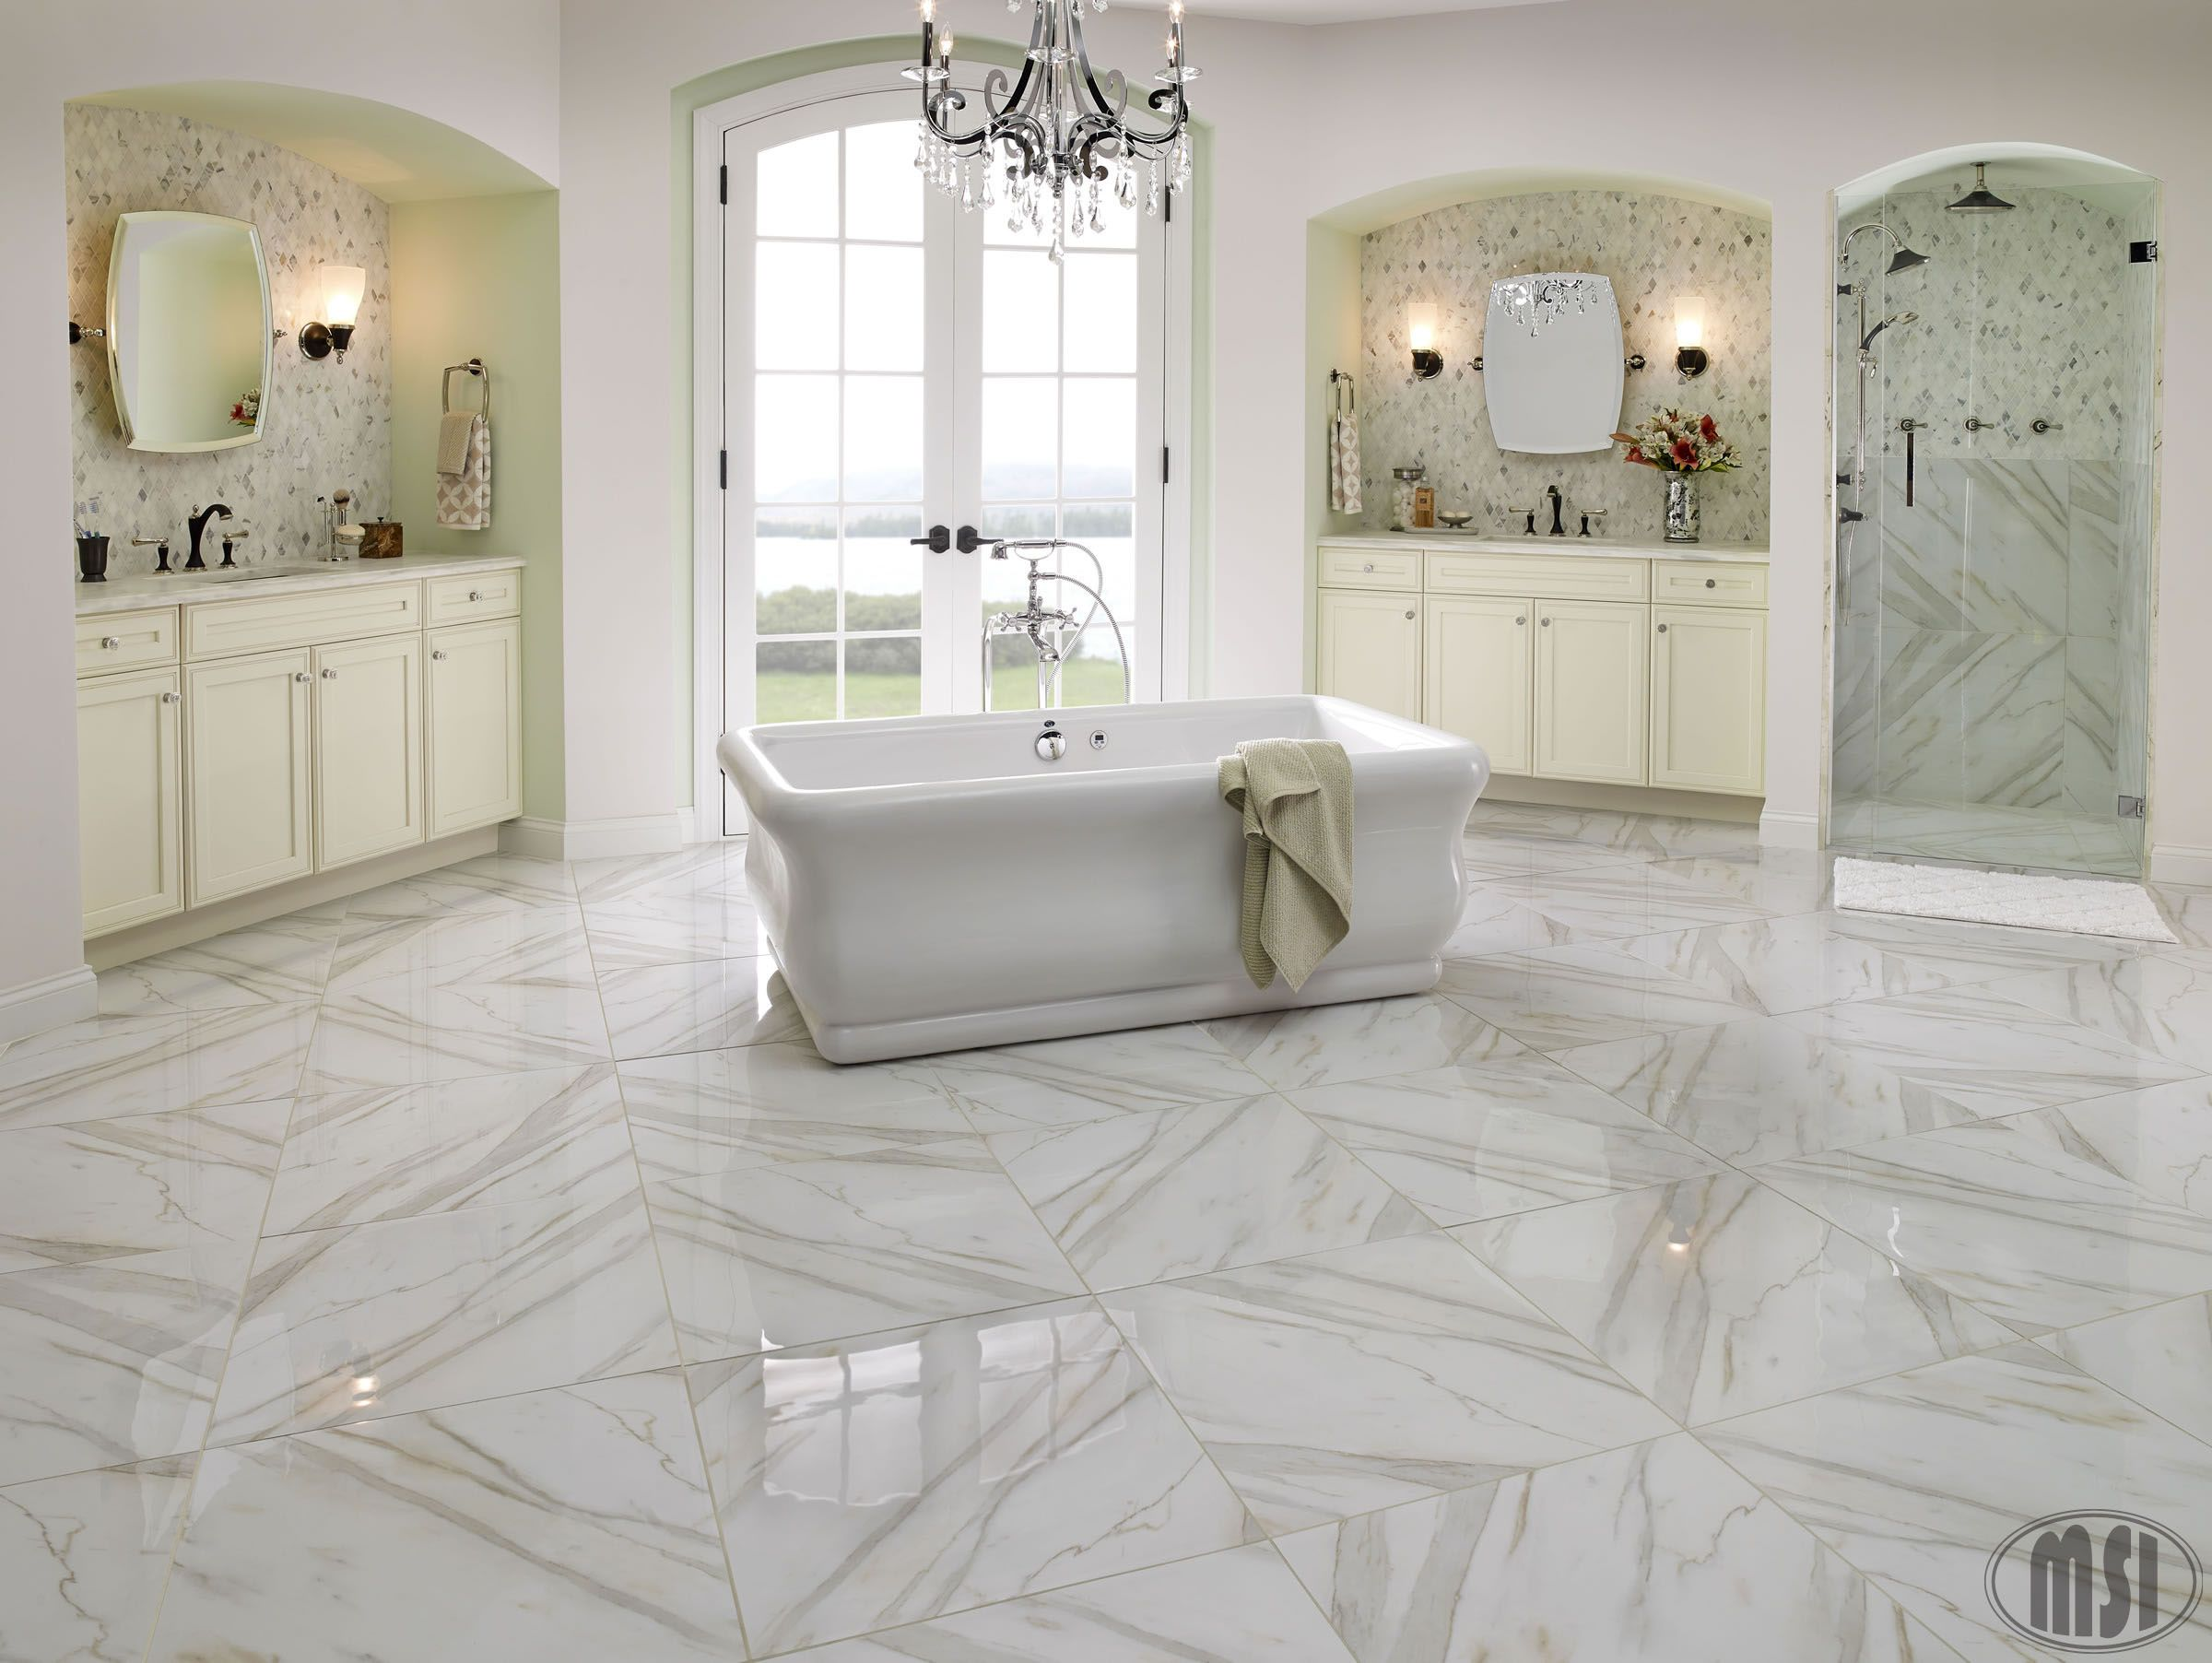 Porcelain pietra calacatta 24x24 stunning luxurious for Masters wall tiles